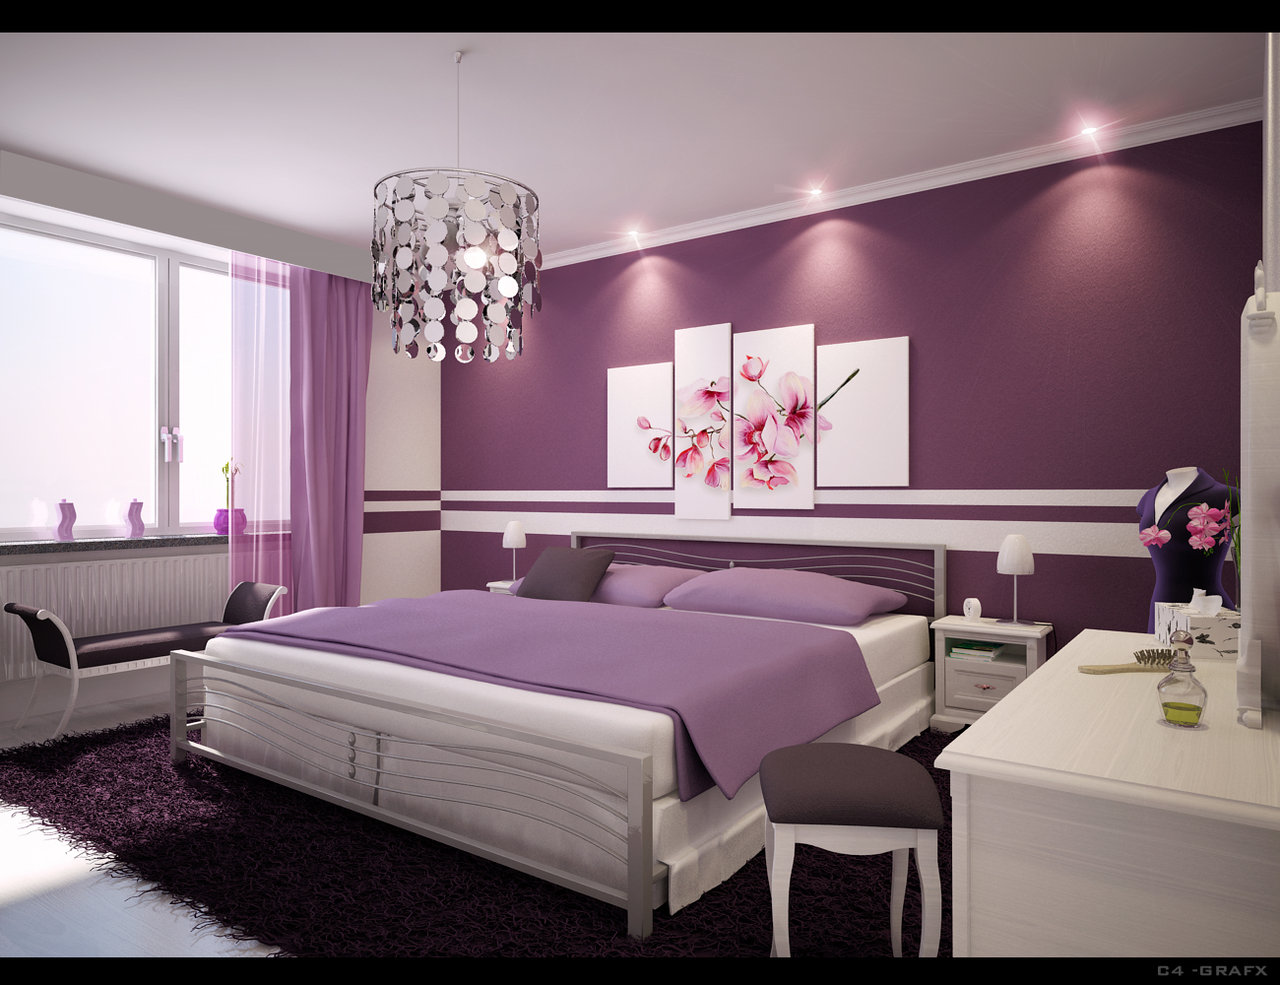 Bedroom Designs Images beautiful bedrooms